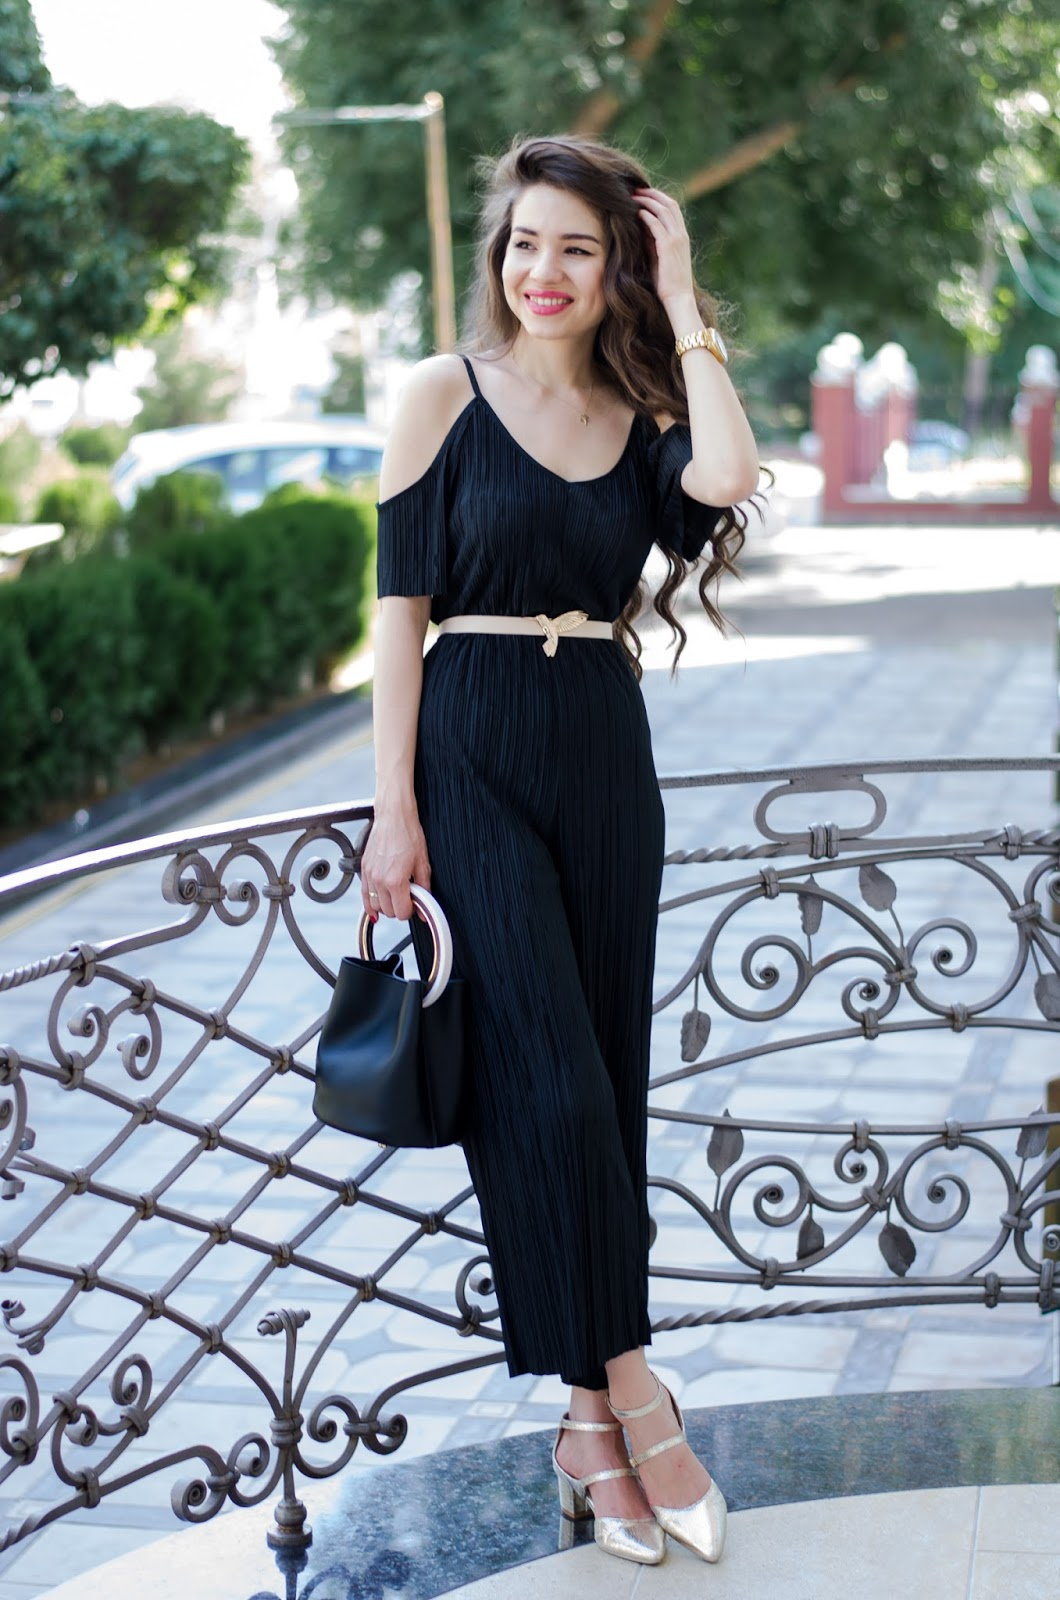 diyorasnotes diyora beta fashion blogger style outfitoftheday lookoftheday black jumpsuit shein gold heels bucket bag round sunglasses street style outfit